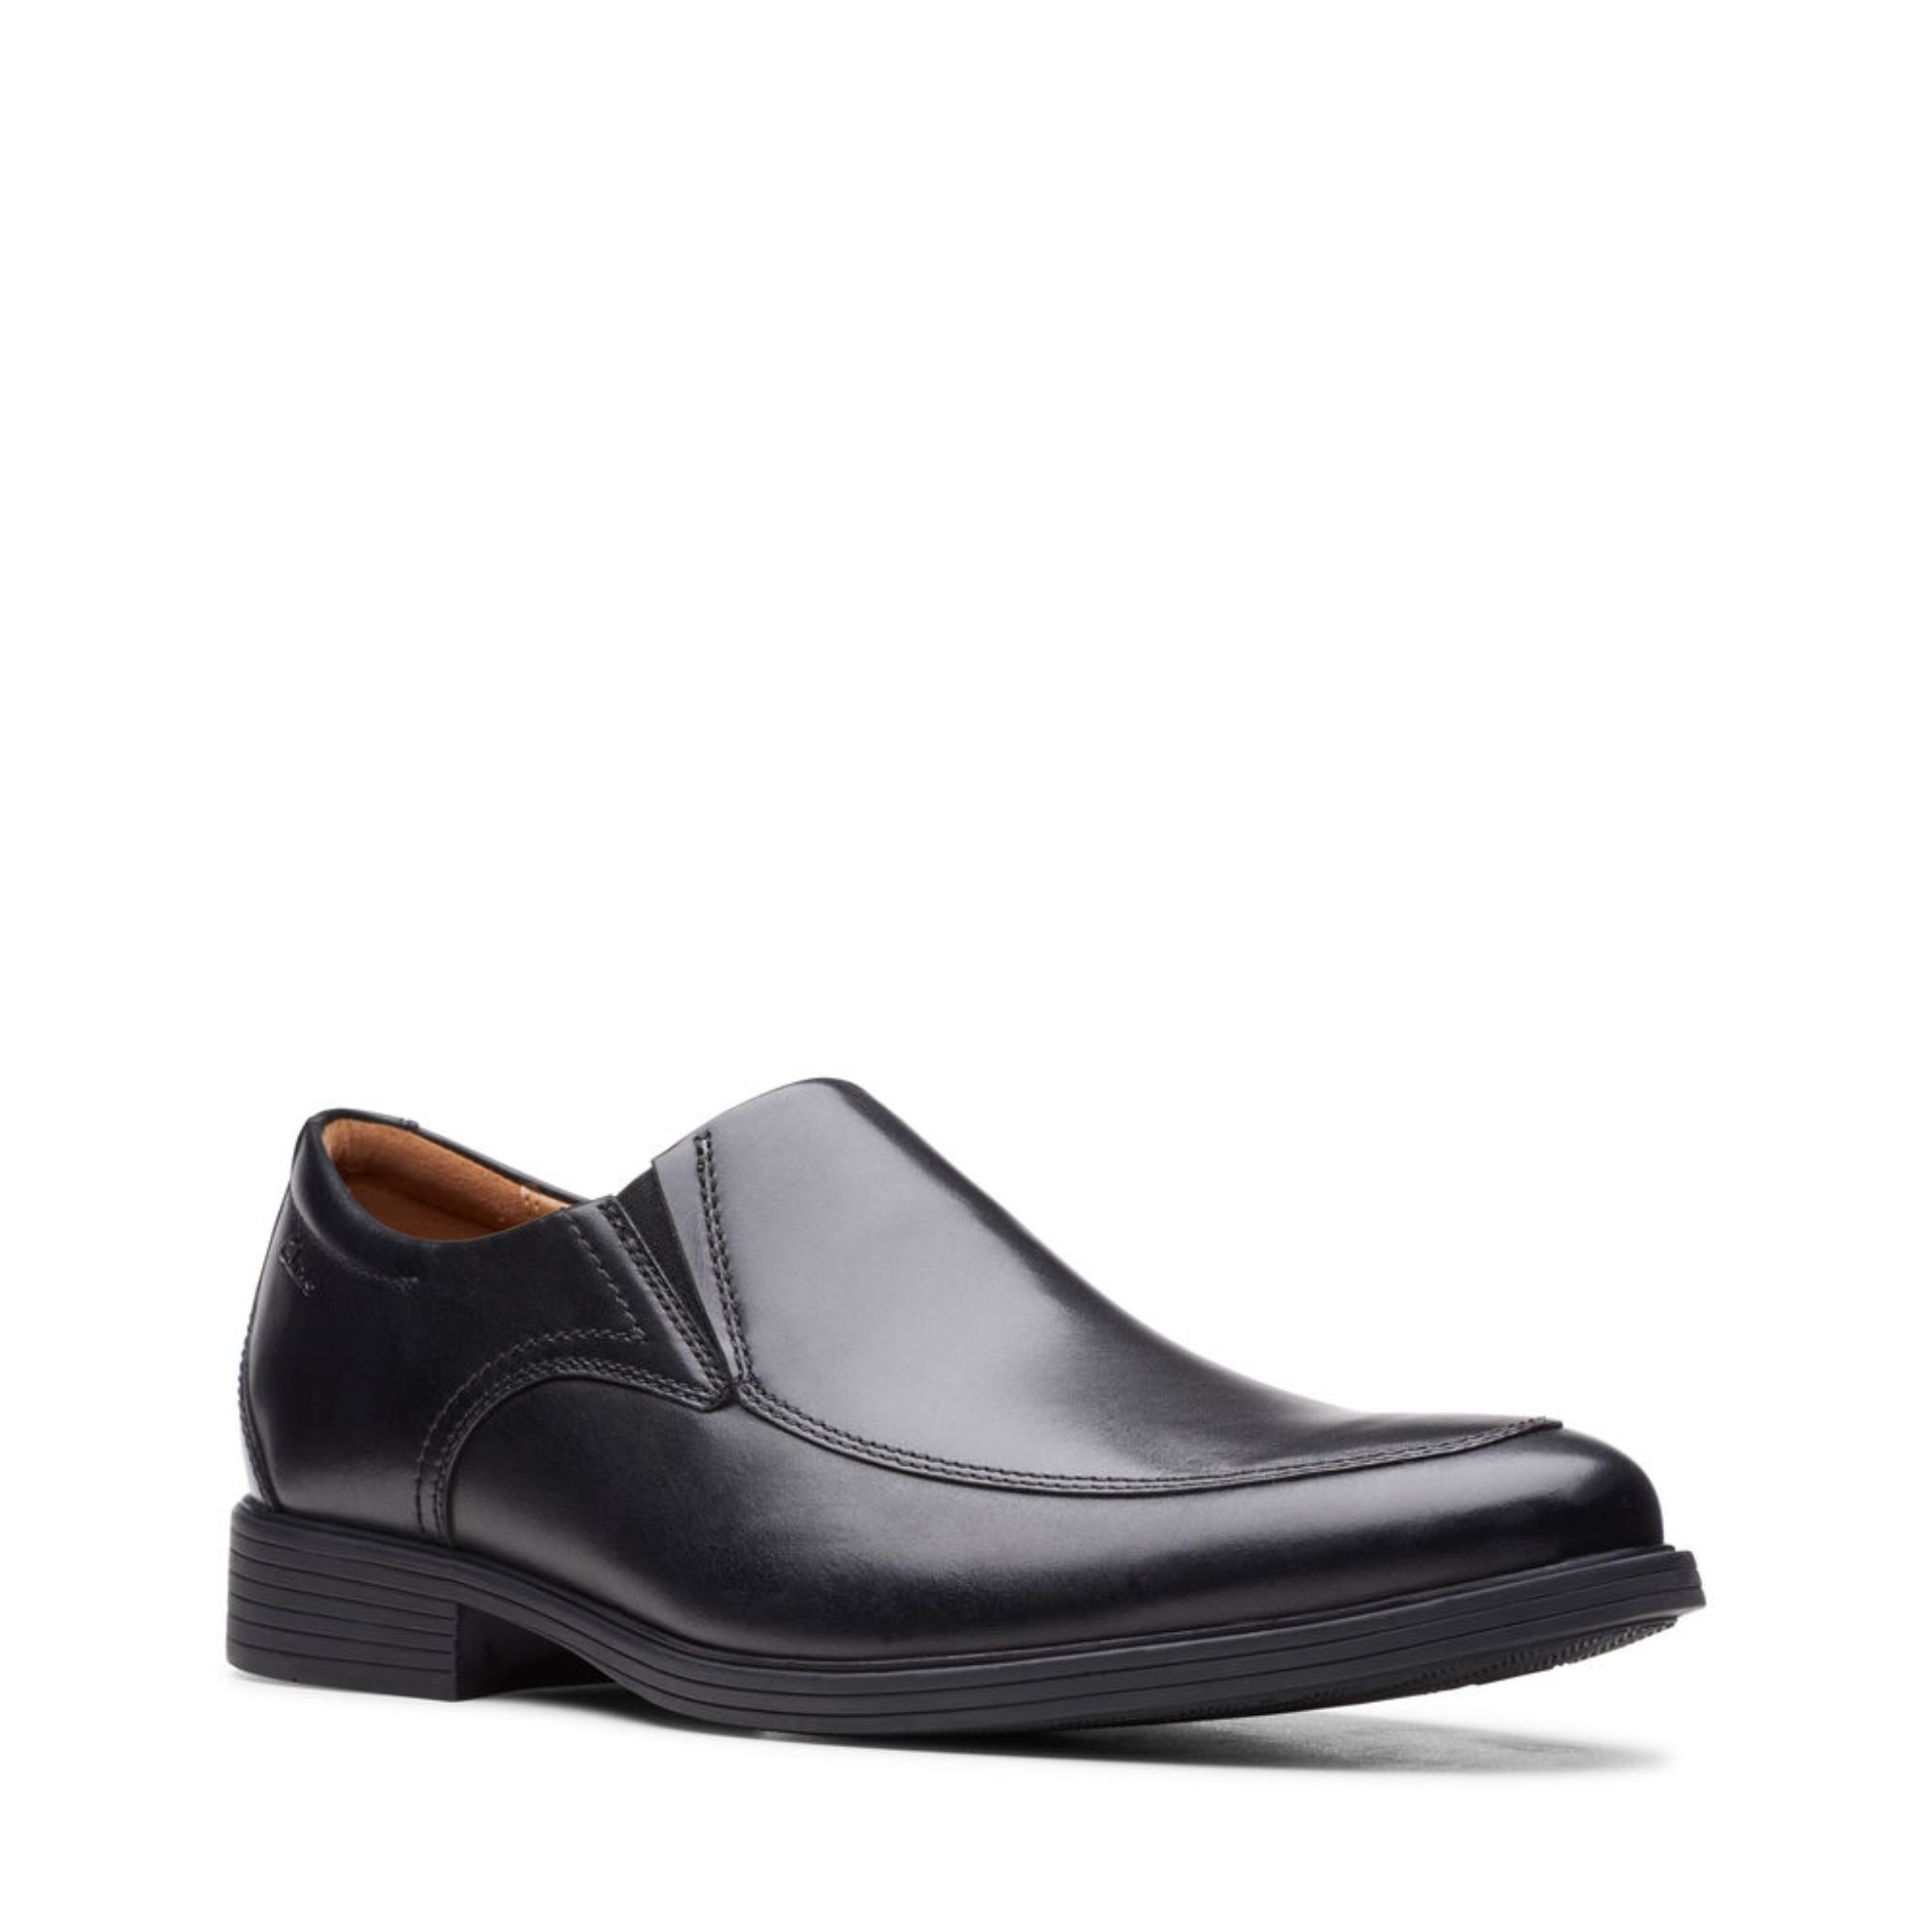 Clarks Whiddon Step - Black Leather